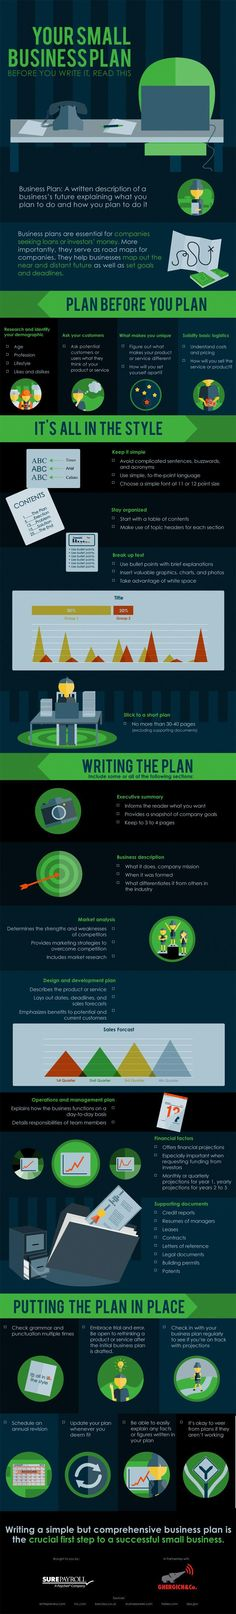 Your Small Business Plan: Before You Write It, Read This #infographic #Business #SmallBusiness